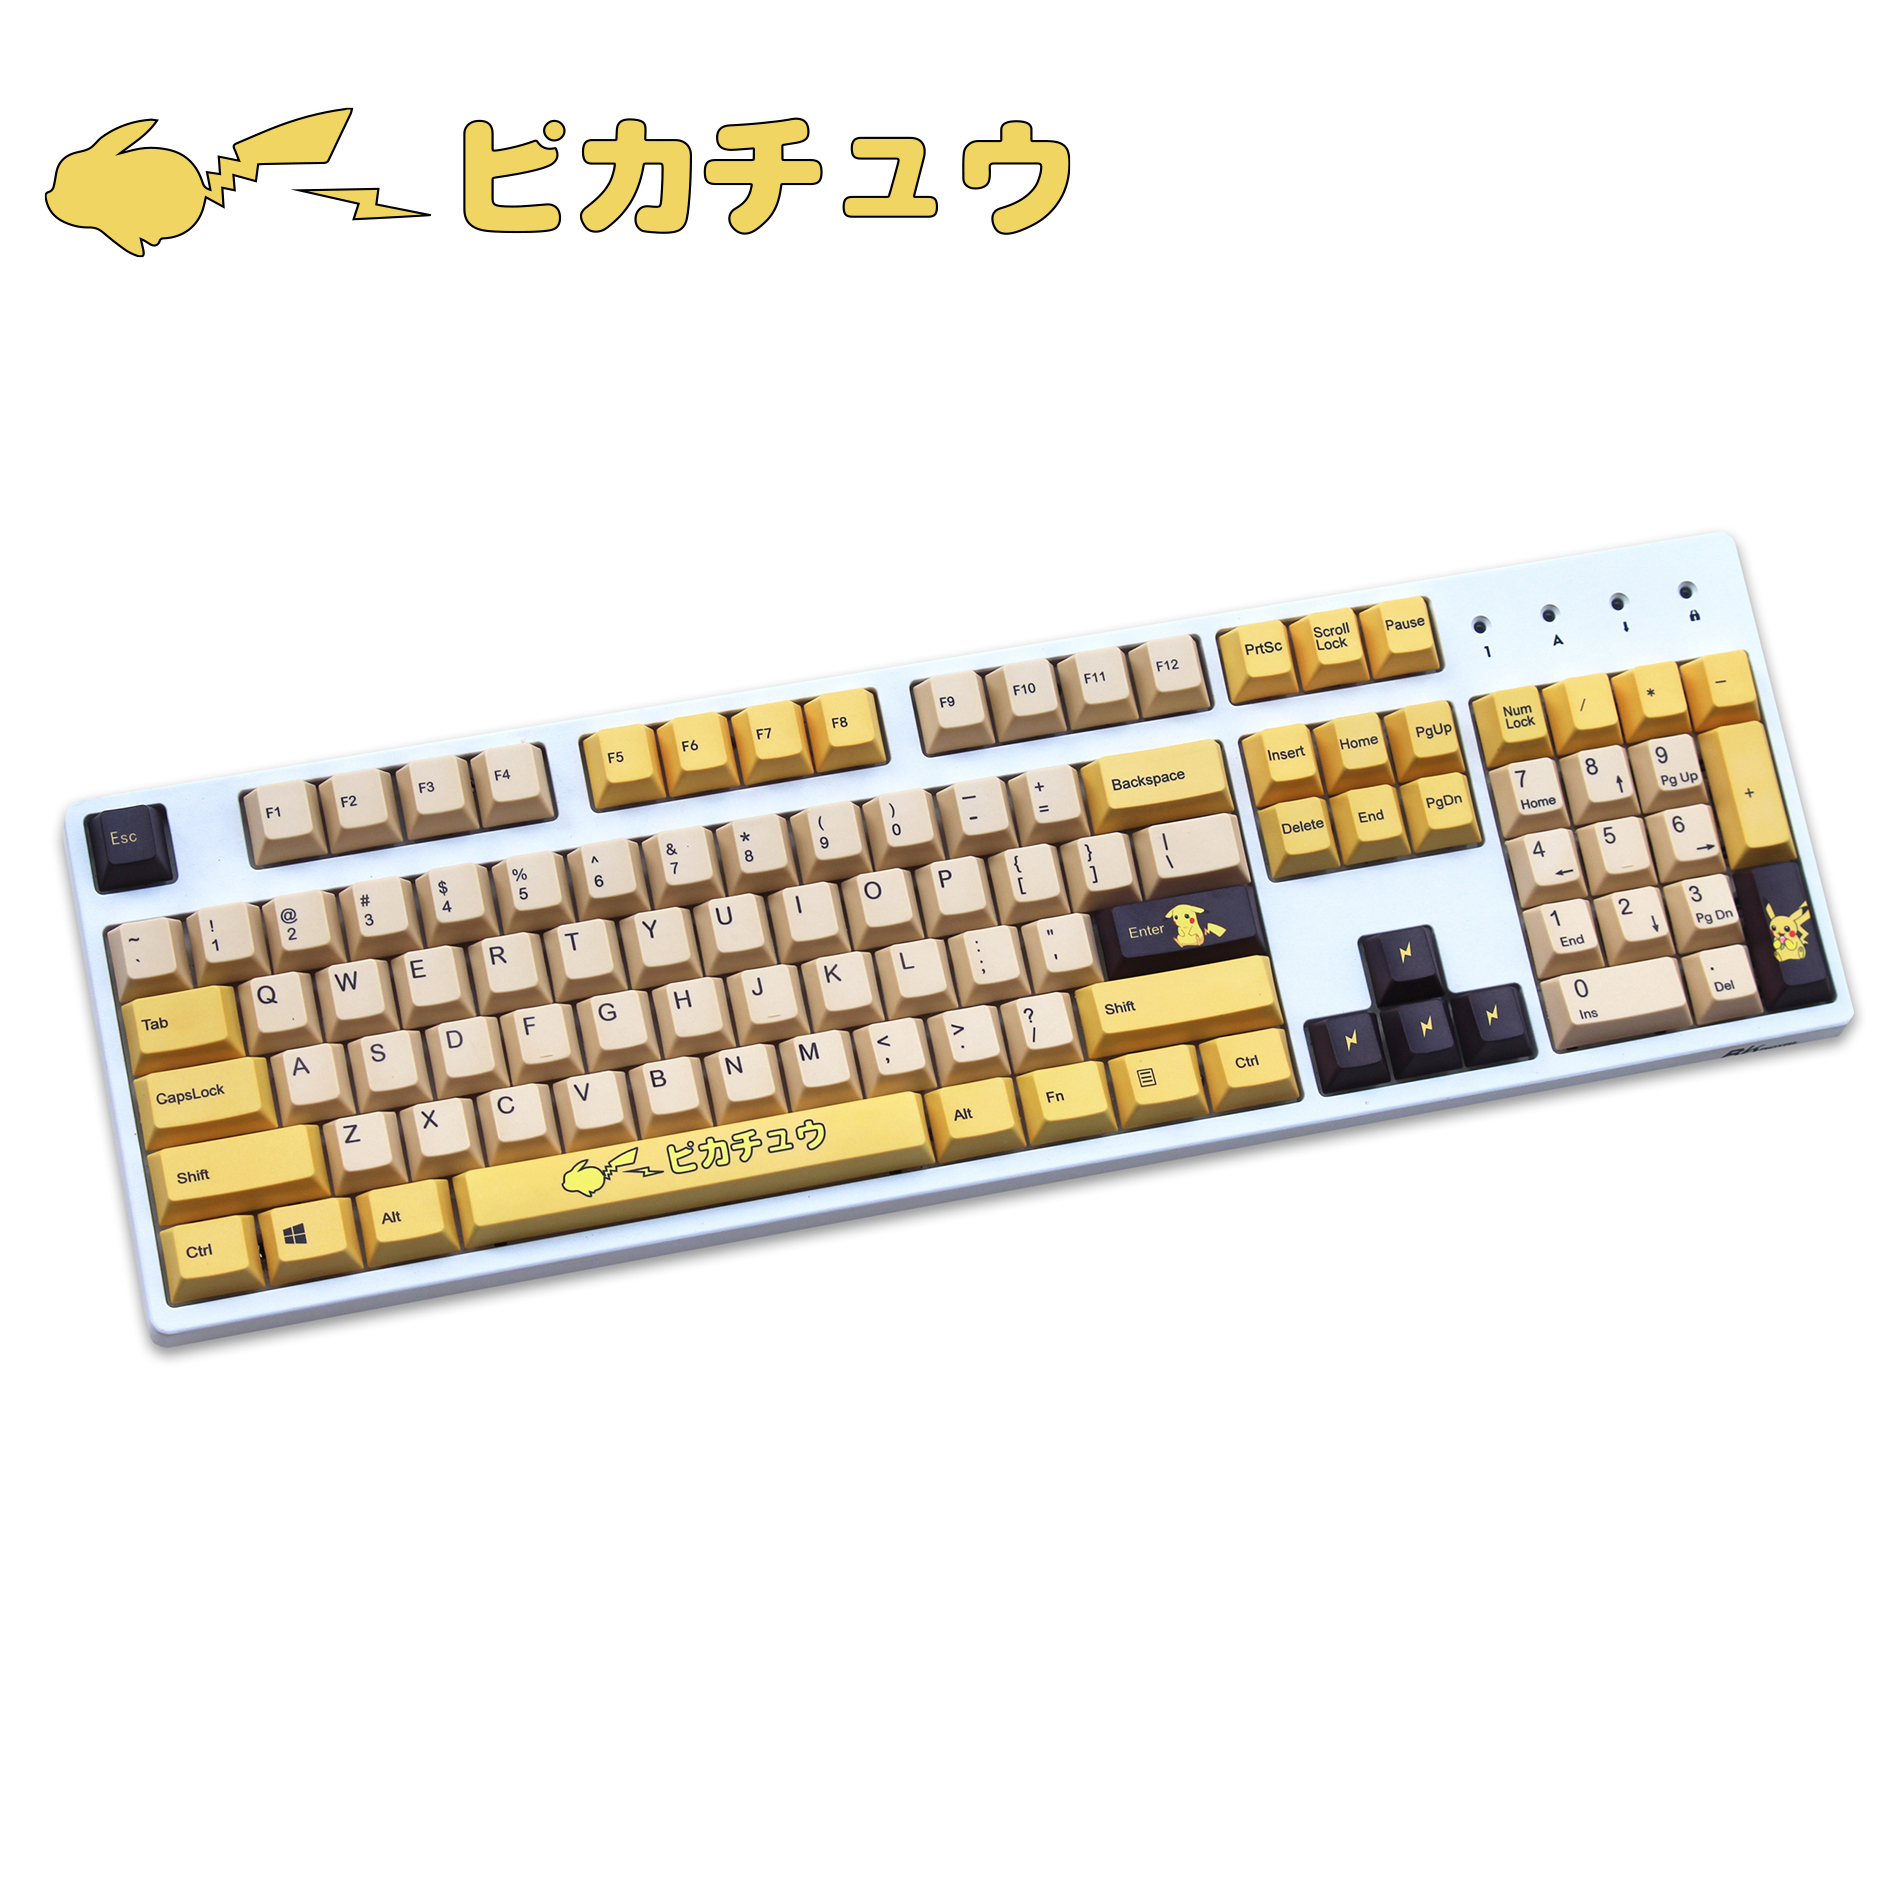 PIKACHU 108 Keys PBT Keycap Cherry Profile Five-sided Dye Sublimation MX Switch For Mechanical Keyboard Keycap Sell Only Keycap